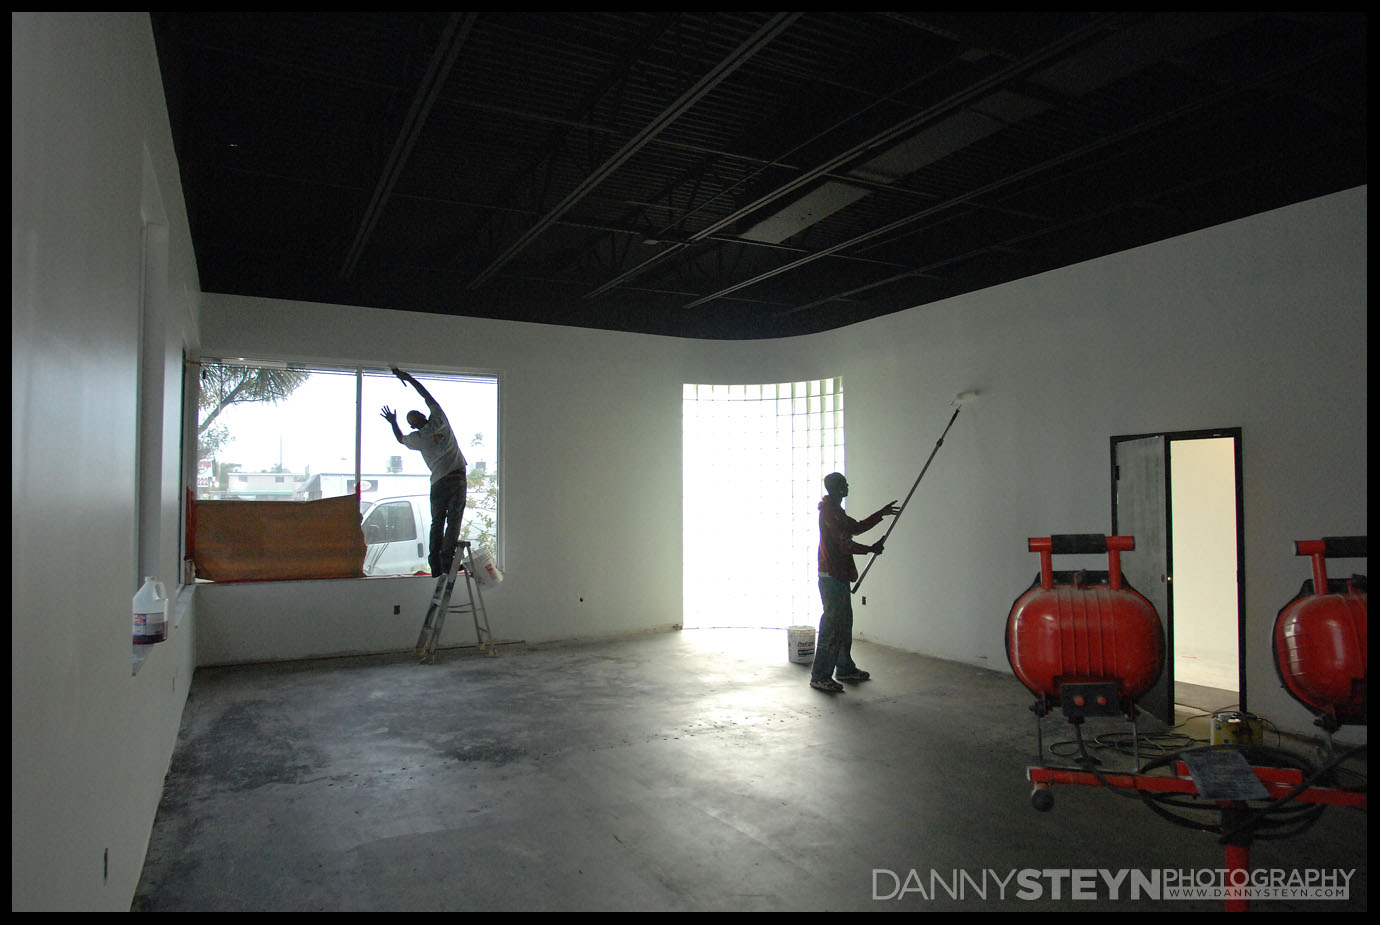 New Photography Studio construction - Studio walls and window frames being painted